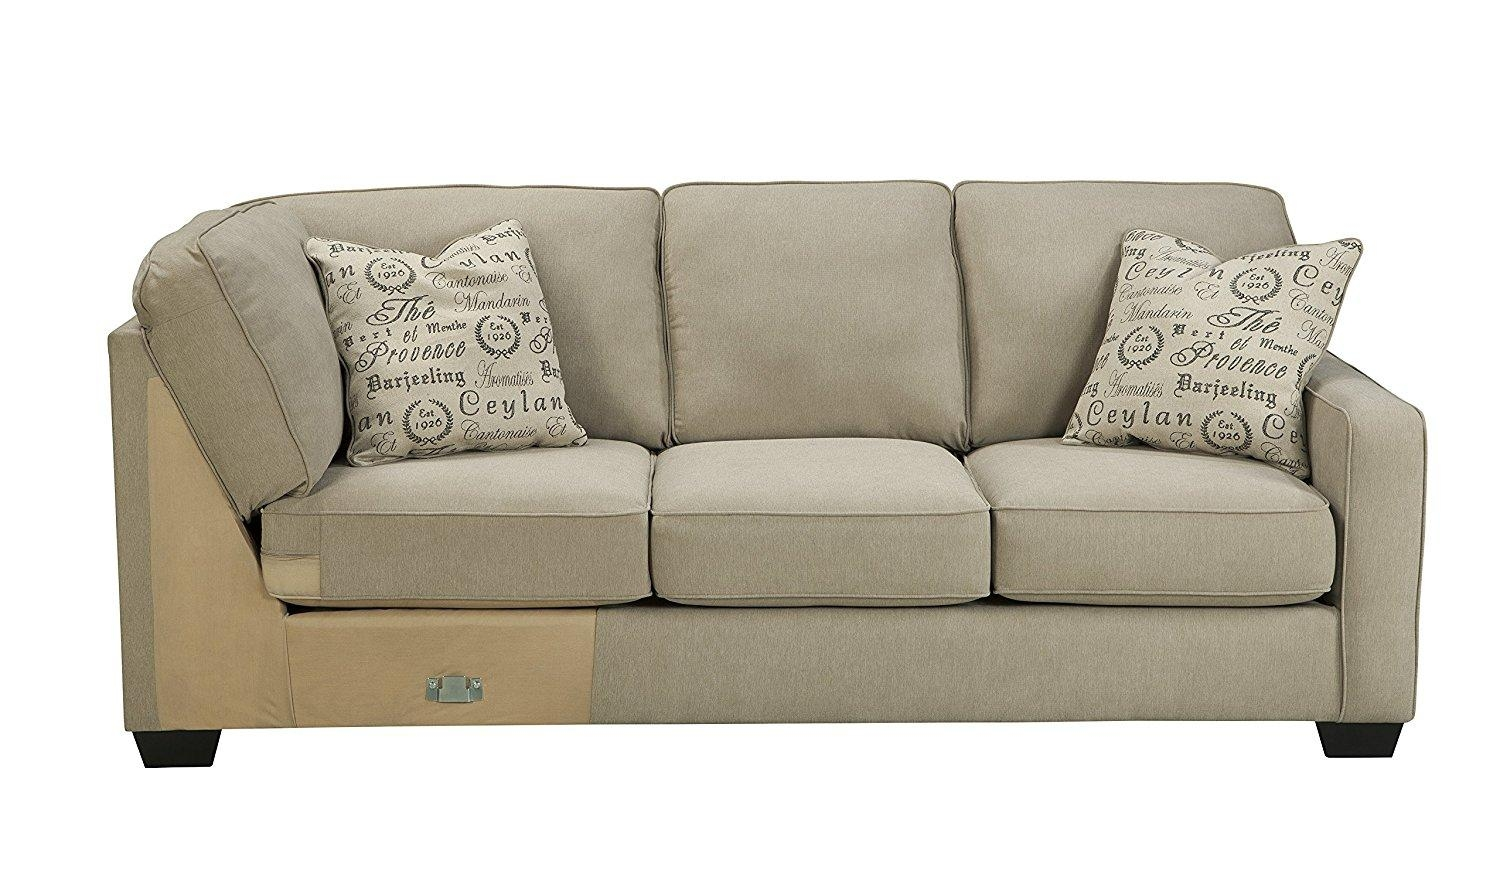 cloud 2 sectional sofa bed for under 200 20 photos sofas ideas